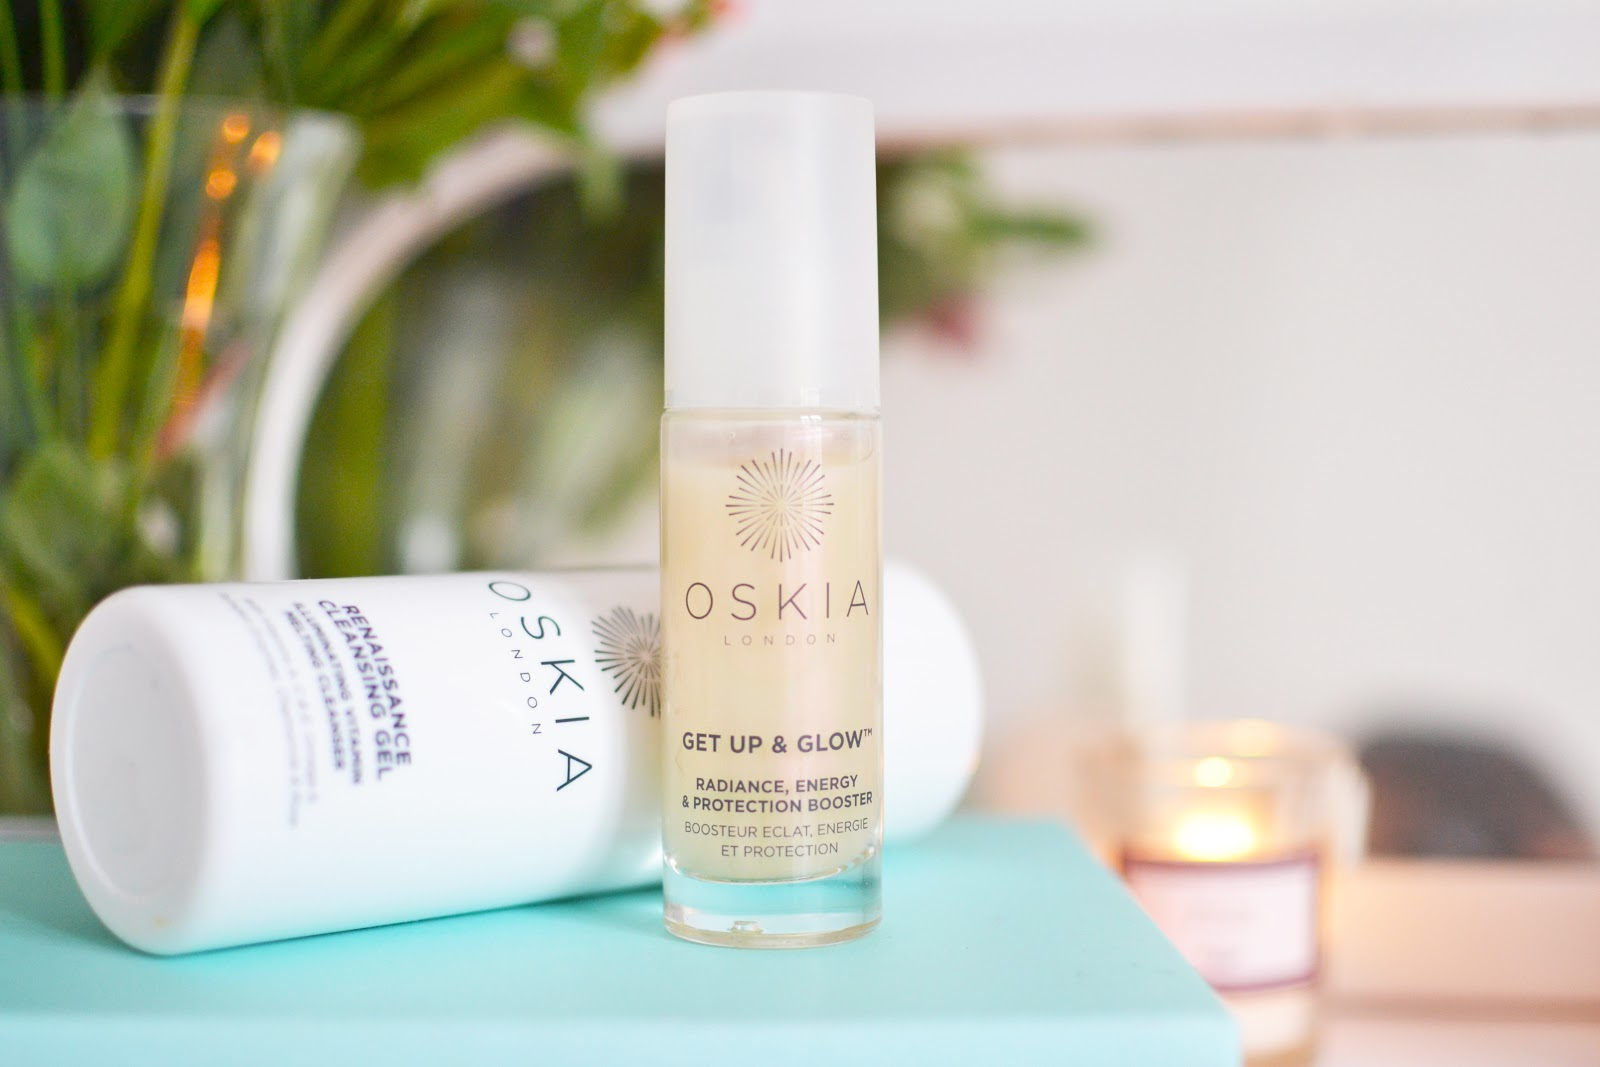 oskia Get Up & Glow Serum